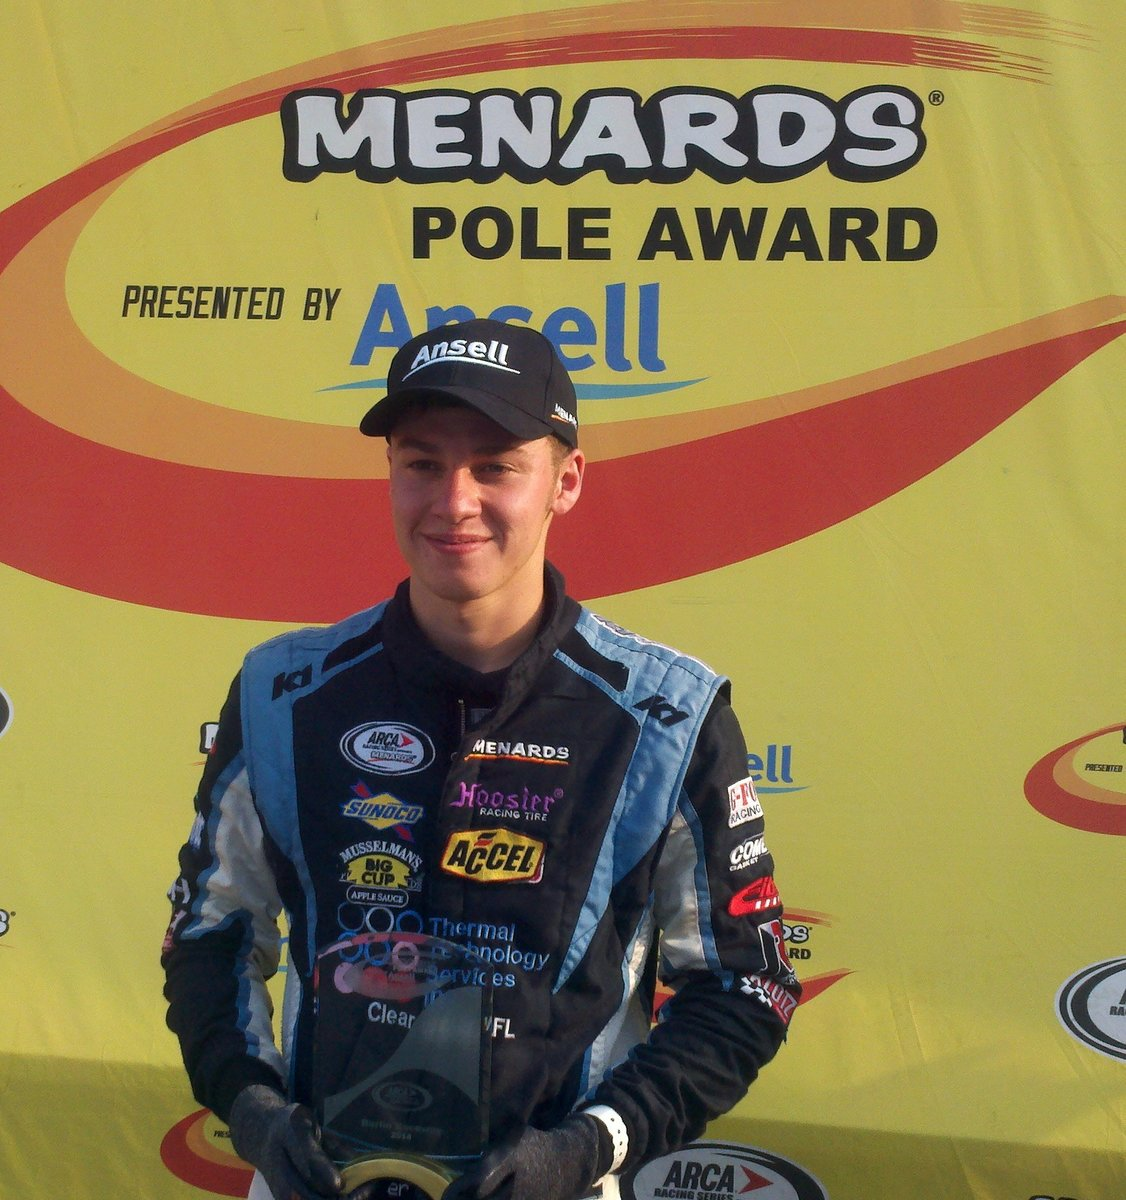 Mitchell wins Menards Pole Award at Berlin Raceway for second consecutive year